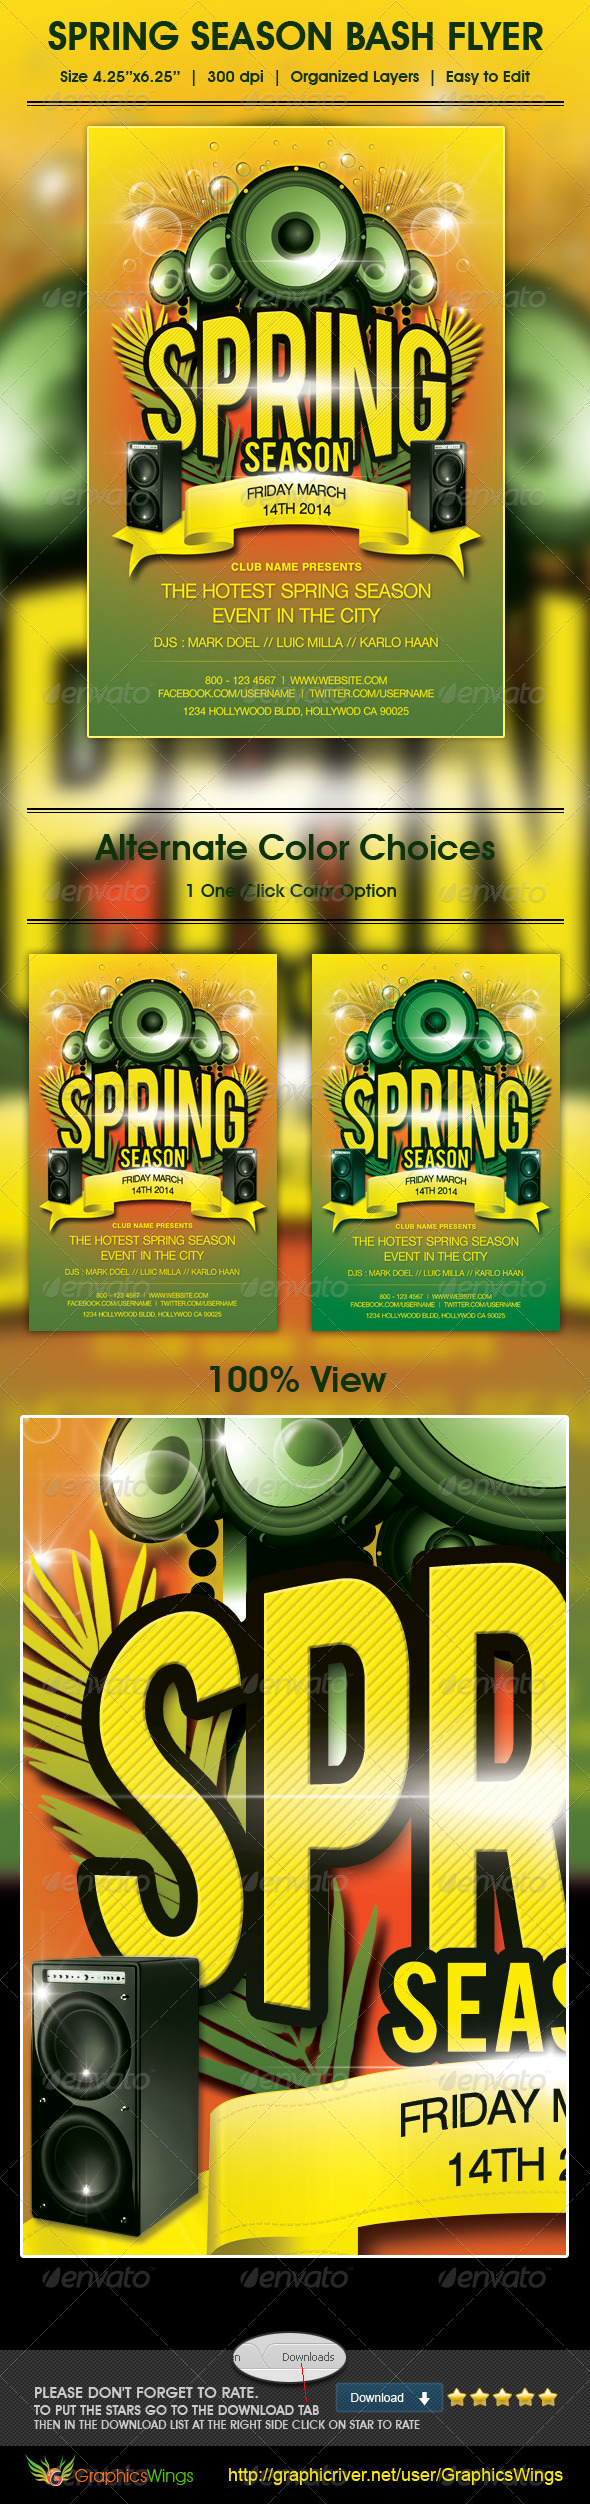 Spring Season Bash Flyer Template - Clubs & Parties Events